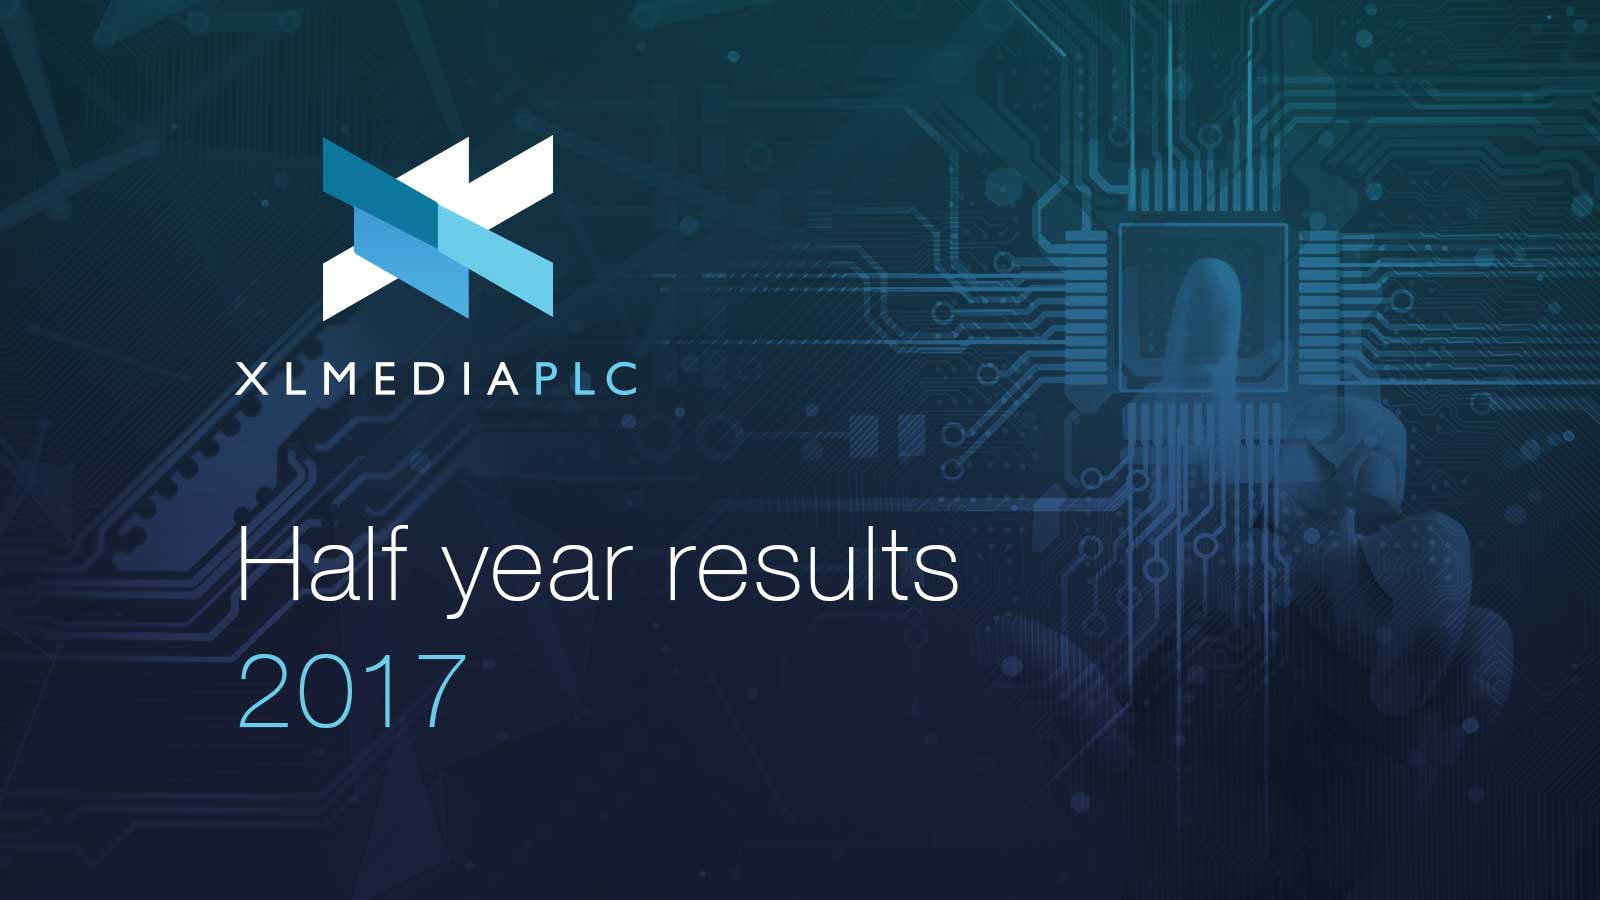 Half year results webcast for 2017